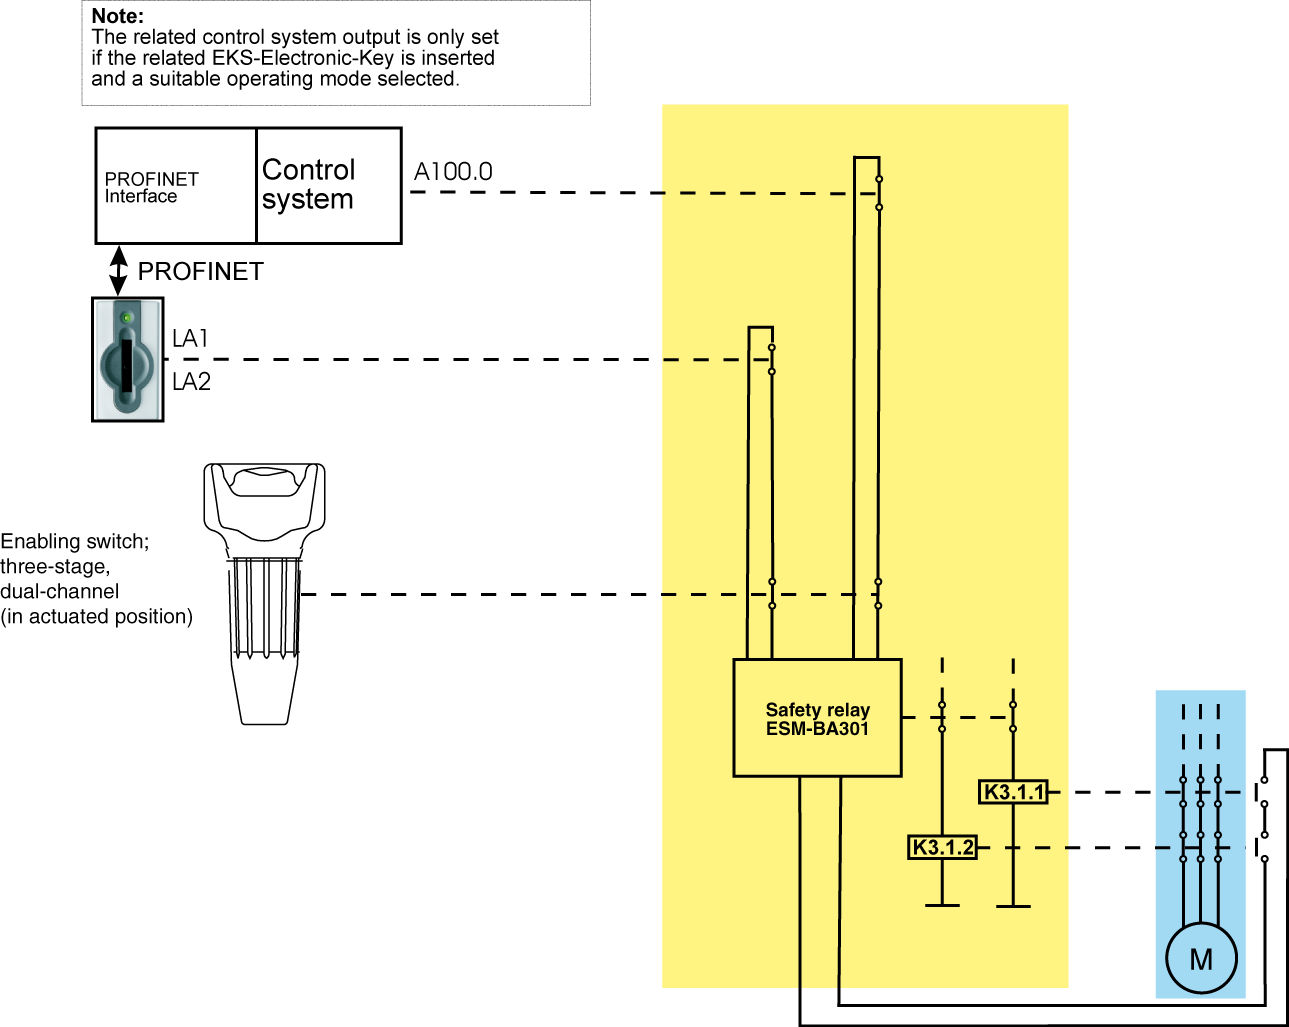 6.4.1 Connection example with enabling switch Figure 3: Principle of operation (illustration with selected operating mode and all components in actuated position) 6.4.1.1 Description of the application example with enabling switch The danger area on a machine is secured with a fence.